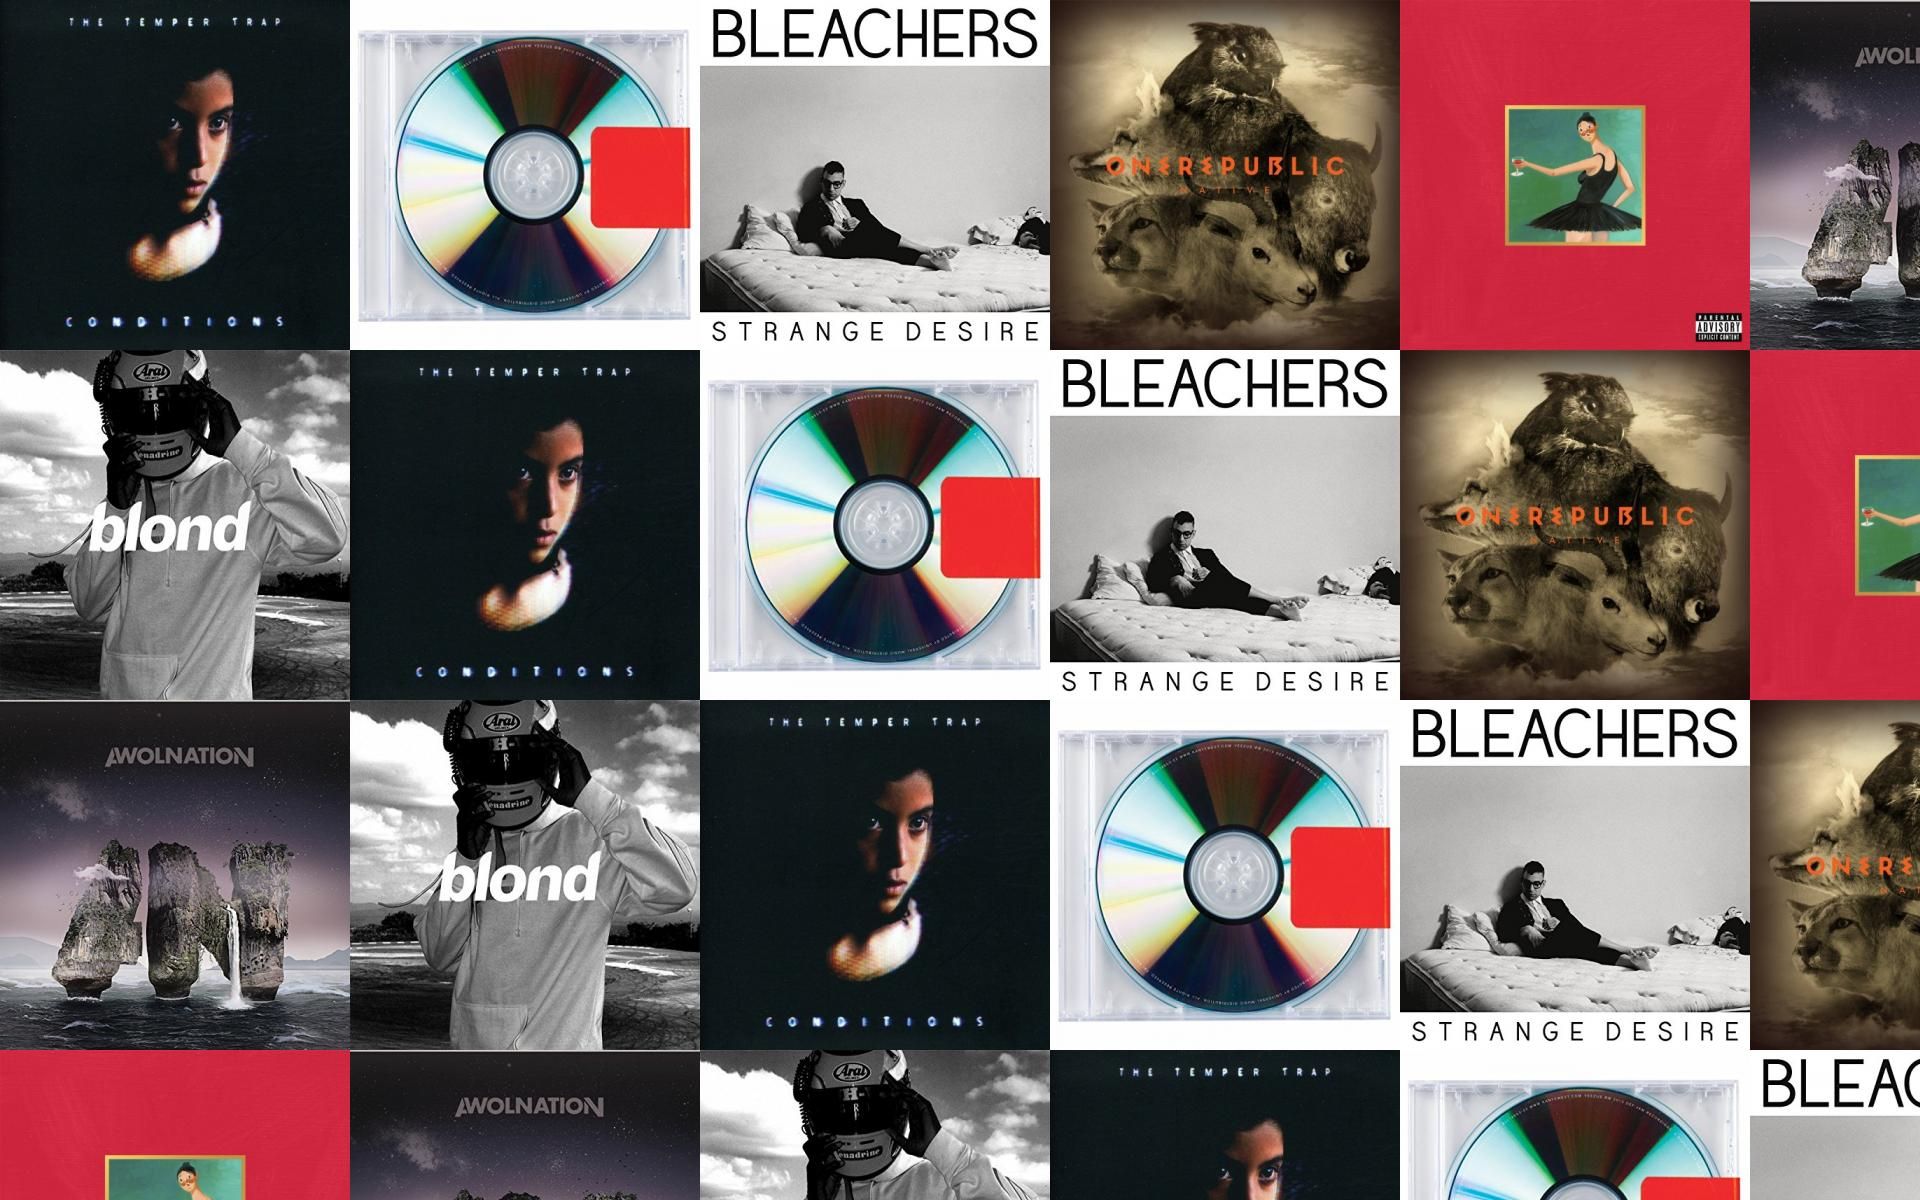 This Free Wallpaper With Images Of Temper Trap Conditions Kanye West Yeezus Bleachers Strange Desires Onerepublic Native Mbdtf